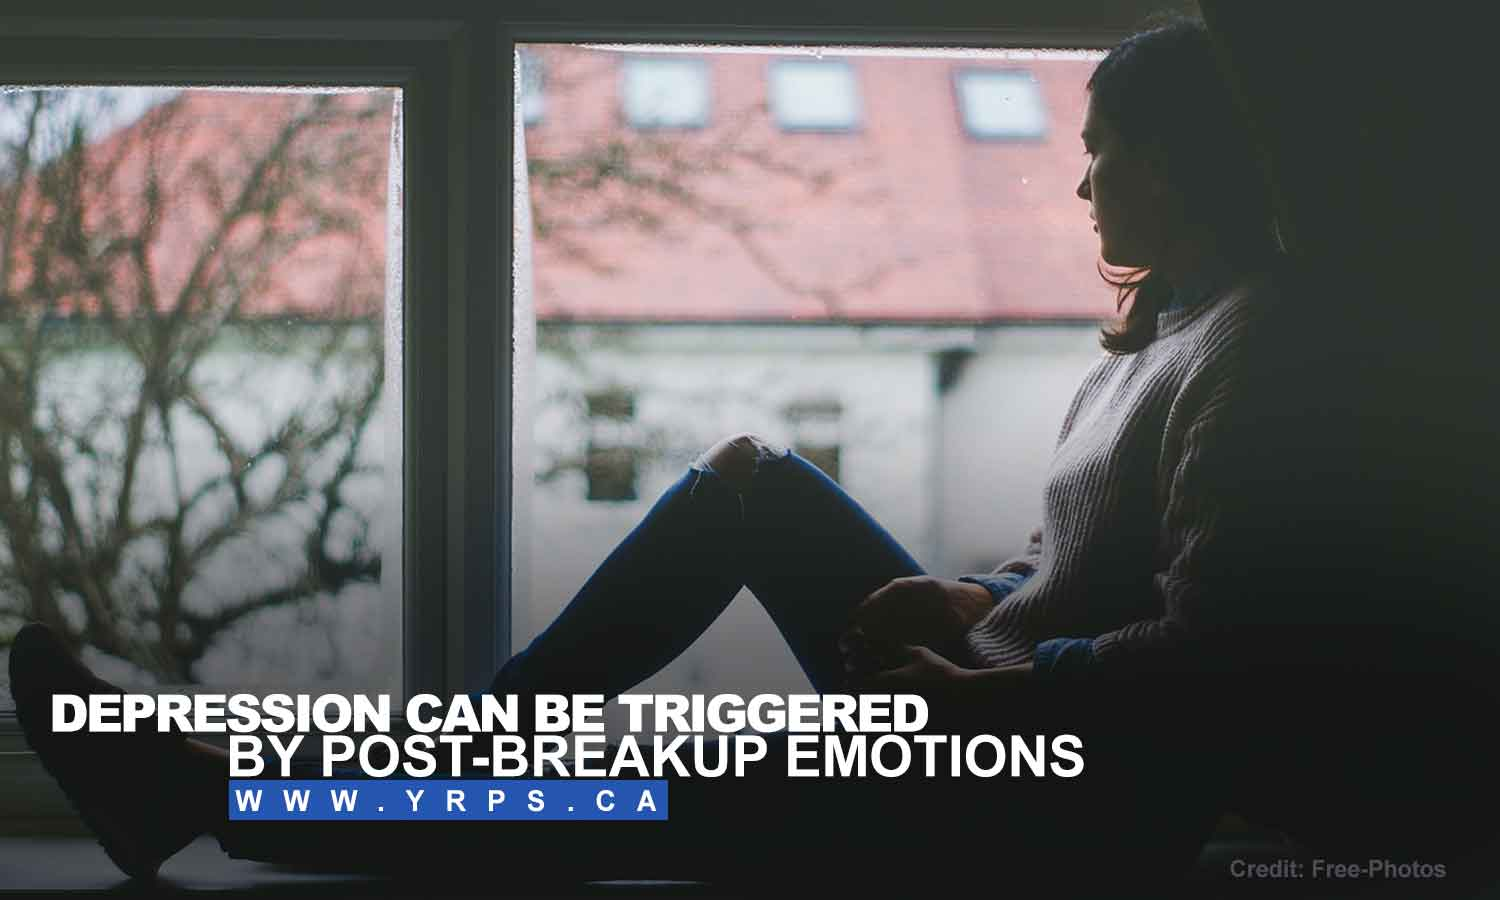 Depression can be triggered by post-breakup emotions